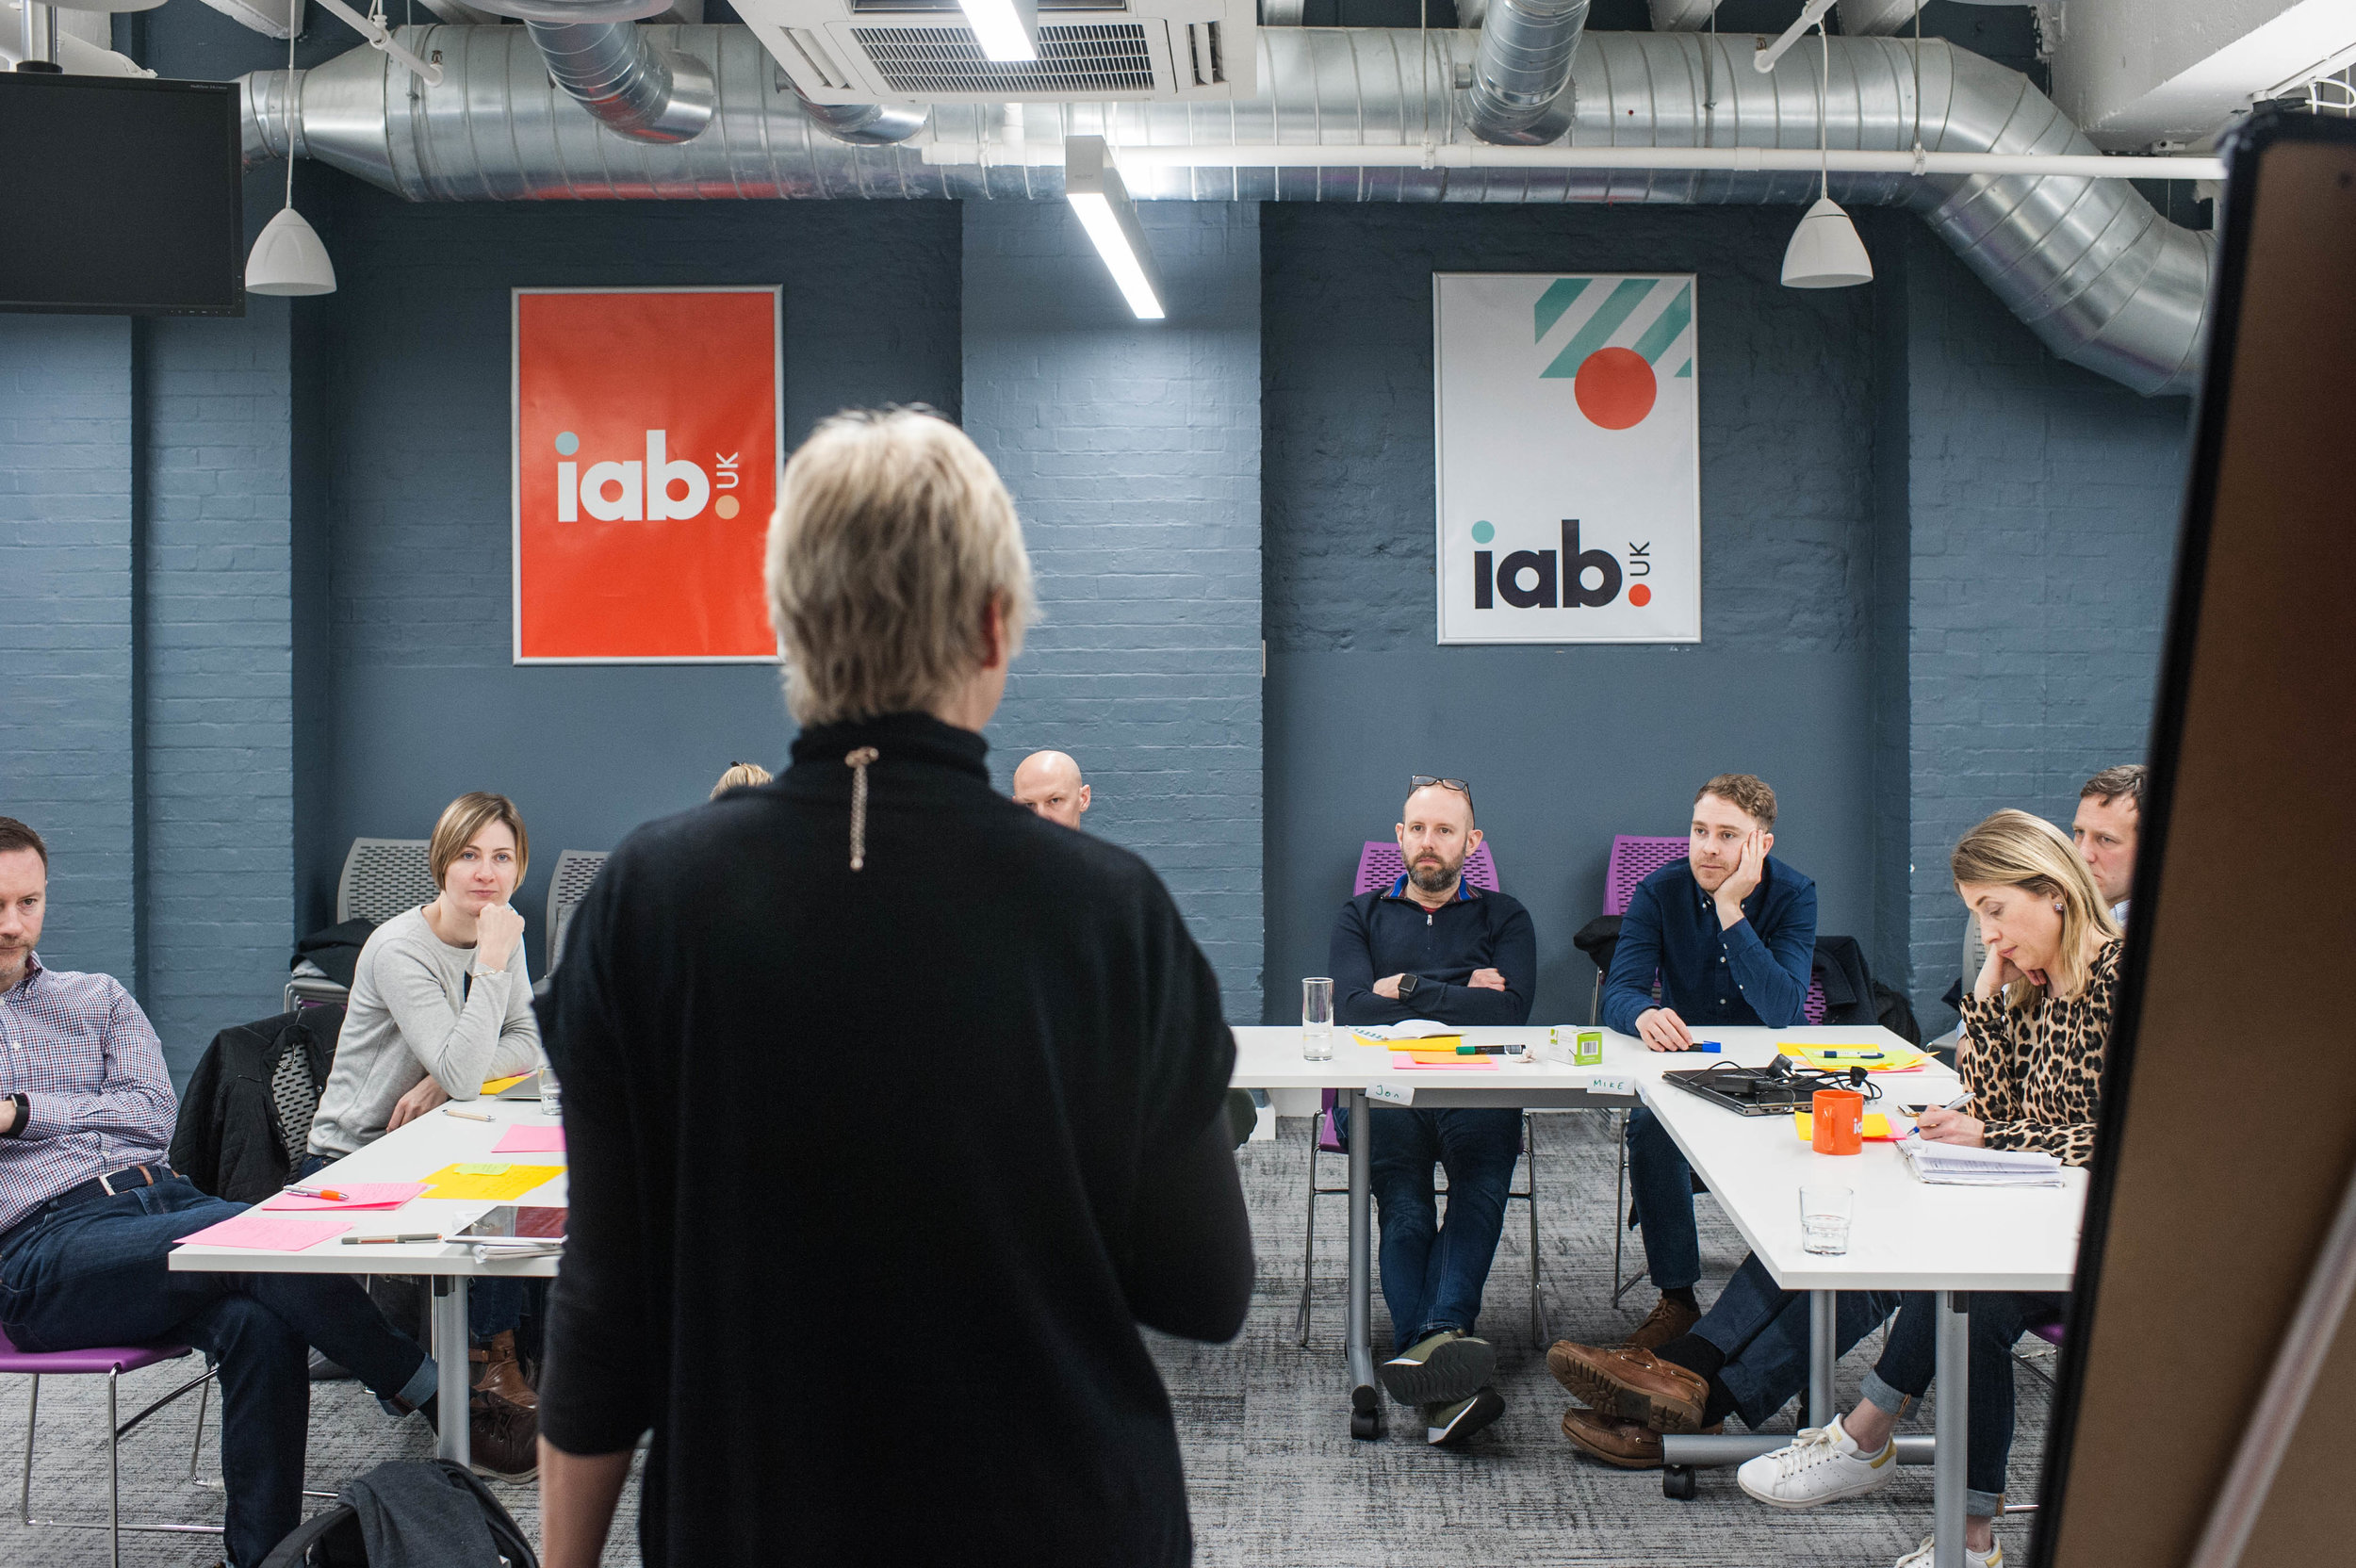 IAB Uk_Incidental Shots_SM (180 of 312).jpg